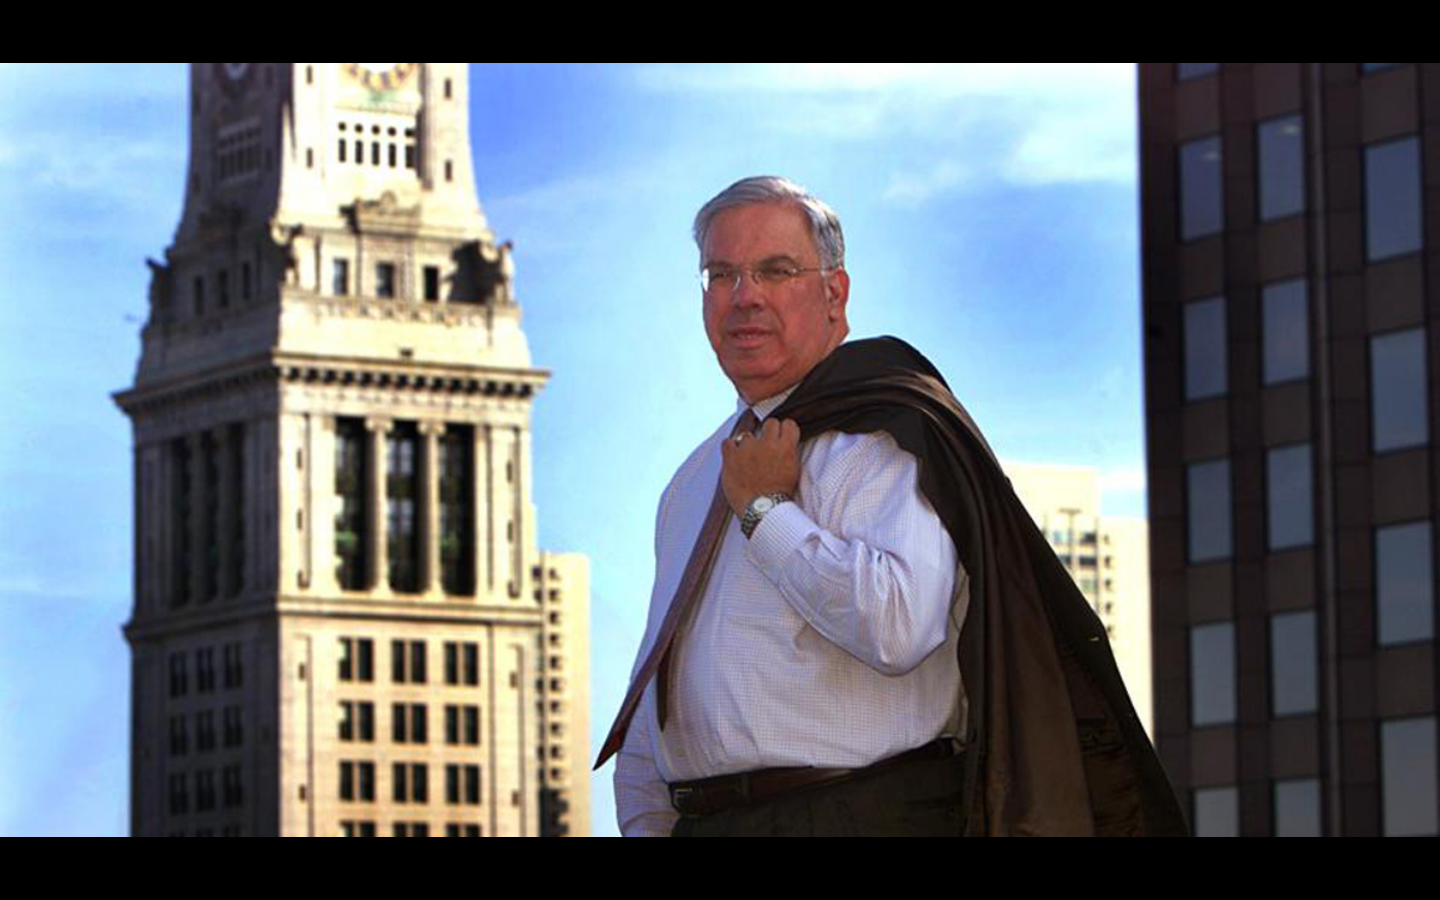 Click here to watch The Boston Globe's powerful video about Boston's former Mayor, Thomas Menino, who passed away on October 30, 2014 .